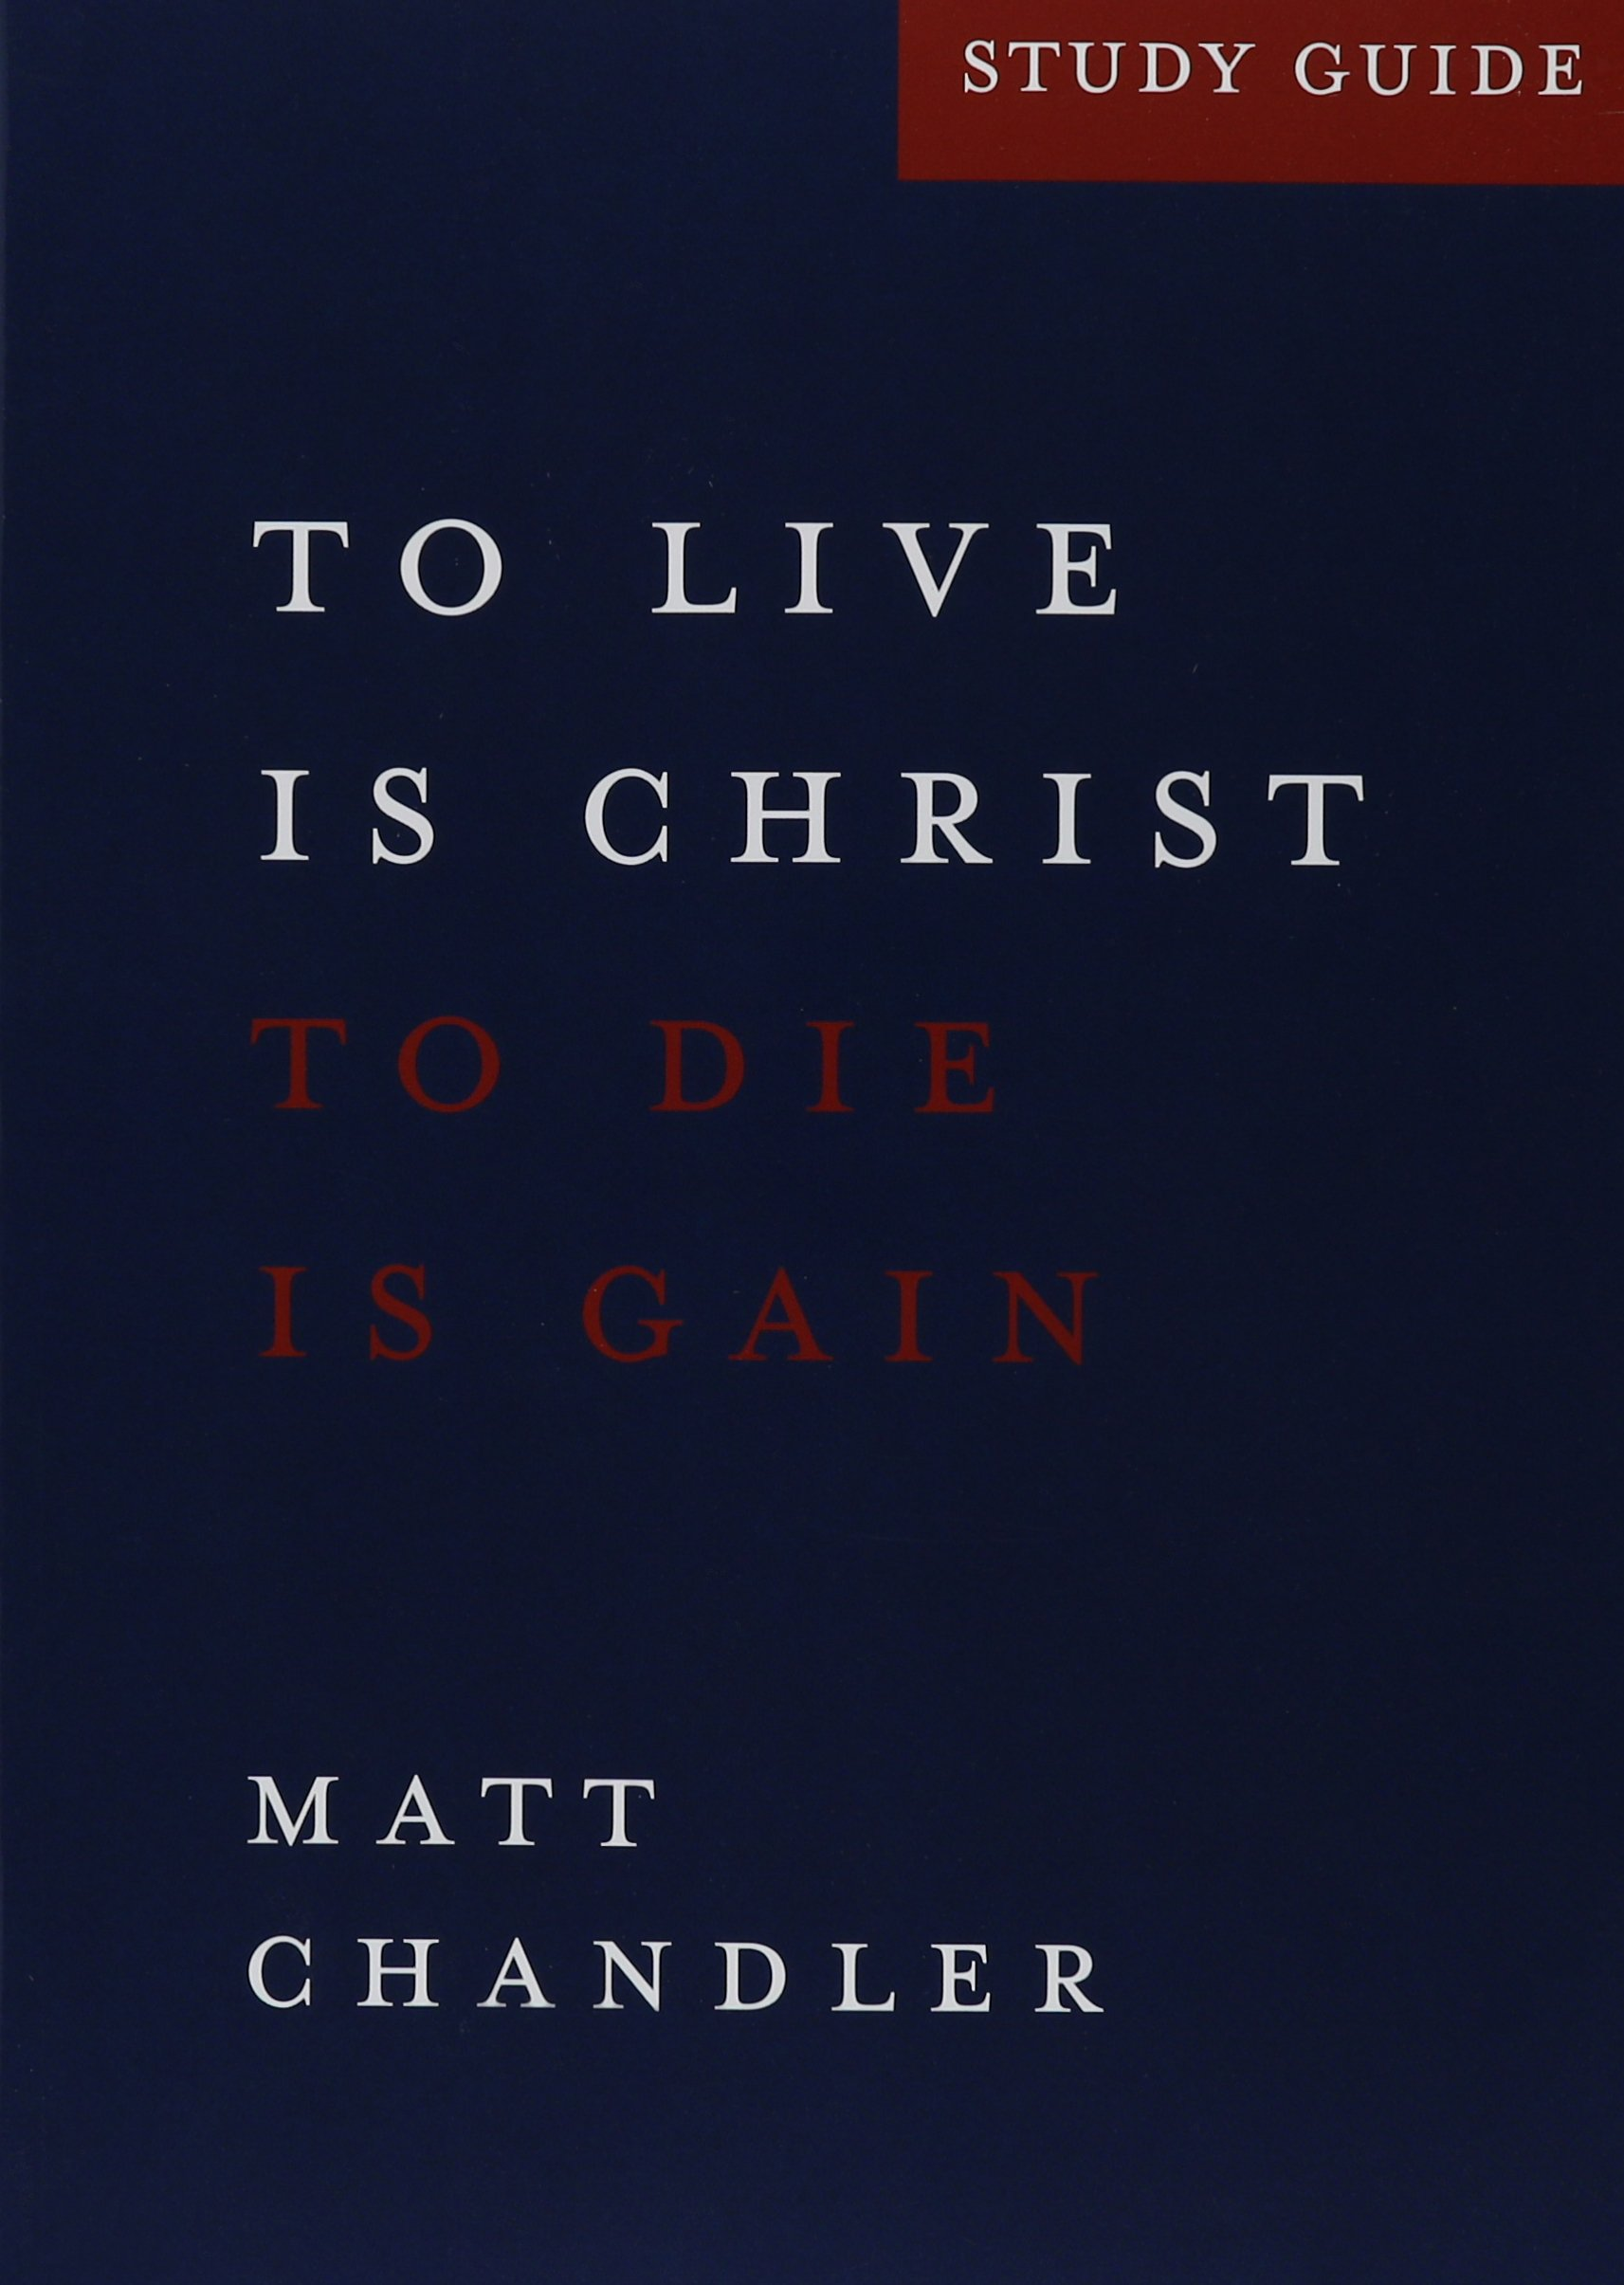 Philippians study guide to live is christ and to die is gain philippians study guide to live is christ and to die is gain matt chandler 9781928828365 amazon books xflitez Gallery